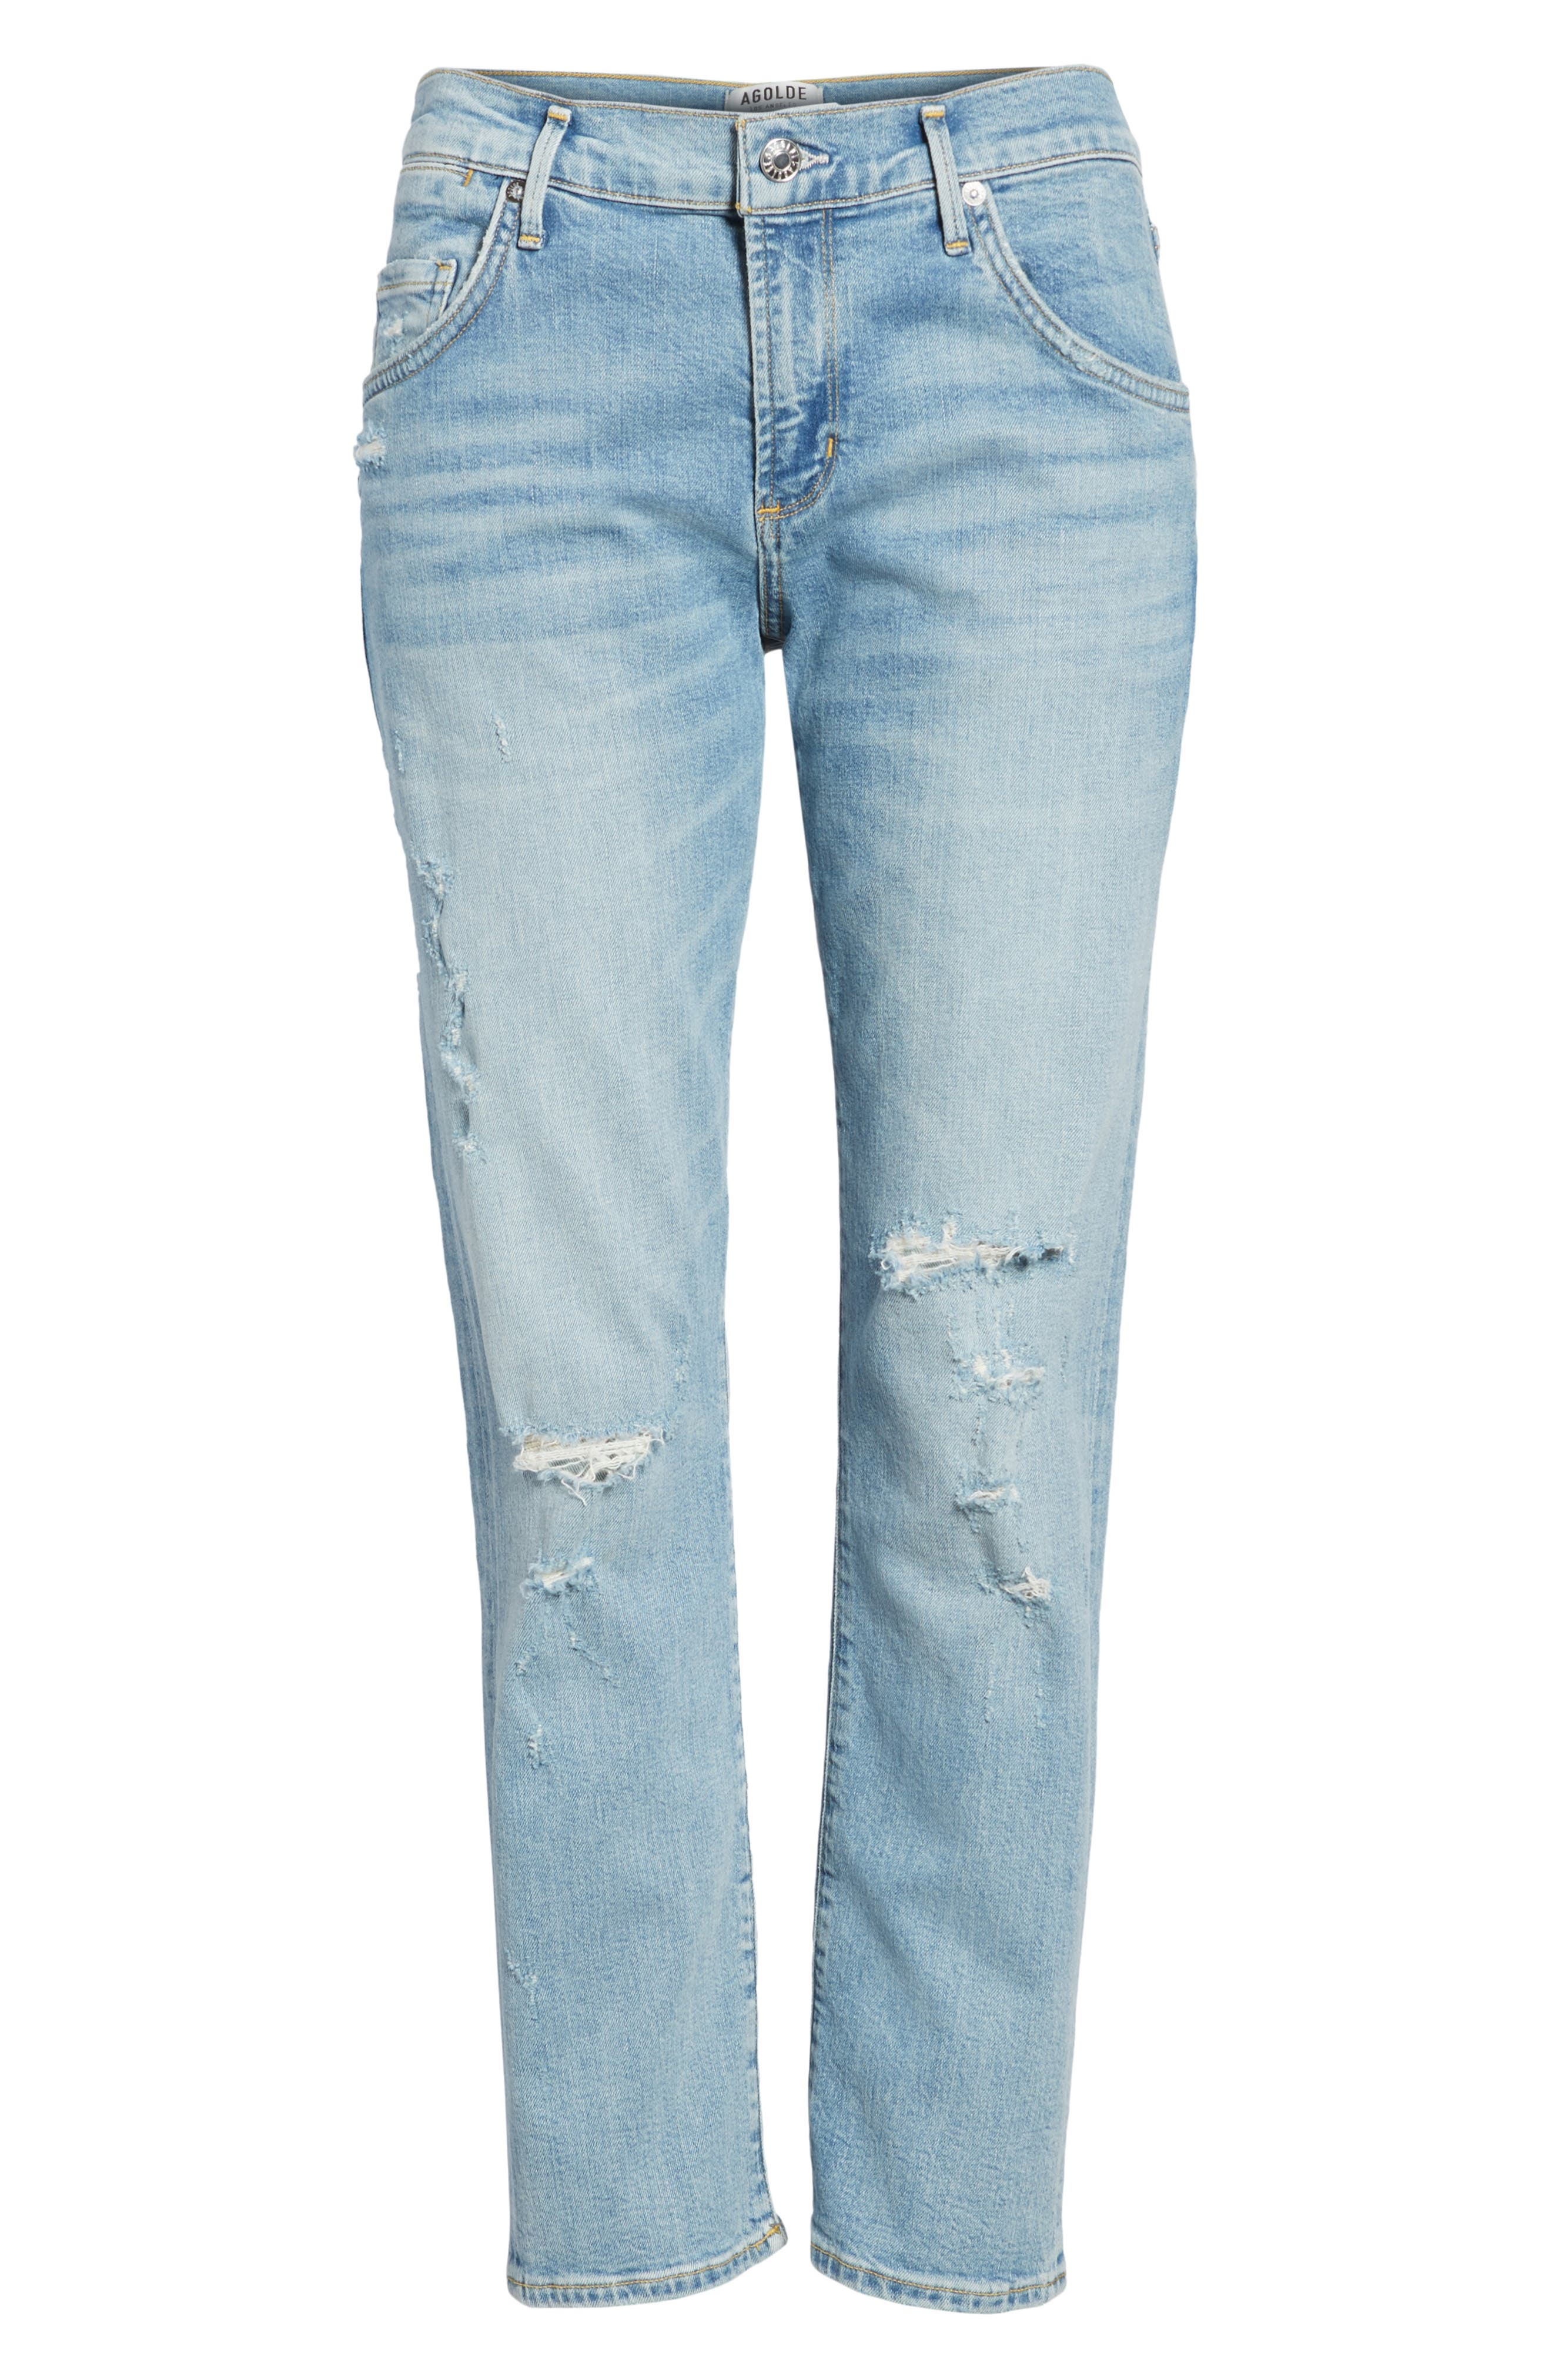 Isabel Ankle Slim Boyfriend Jeans,                             Alternate thumbnail 7, color,                             Dreamer